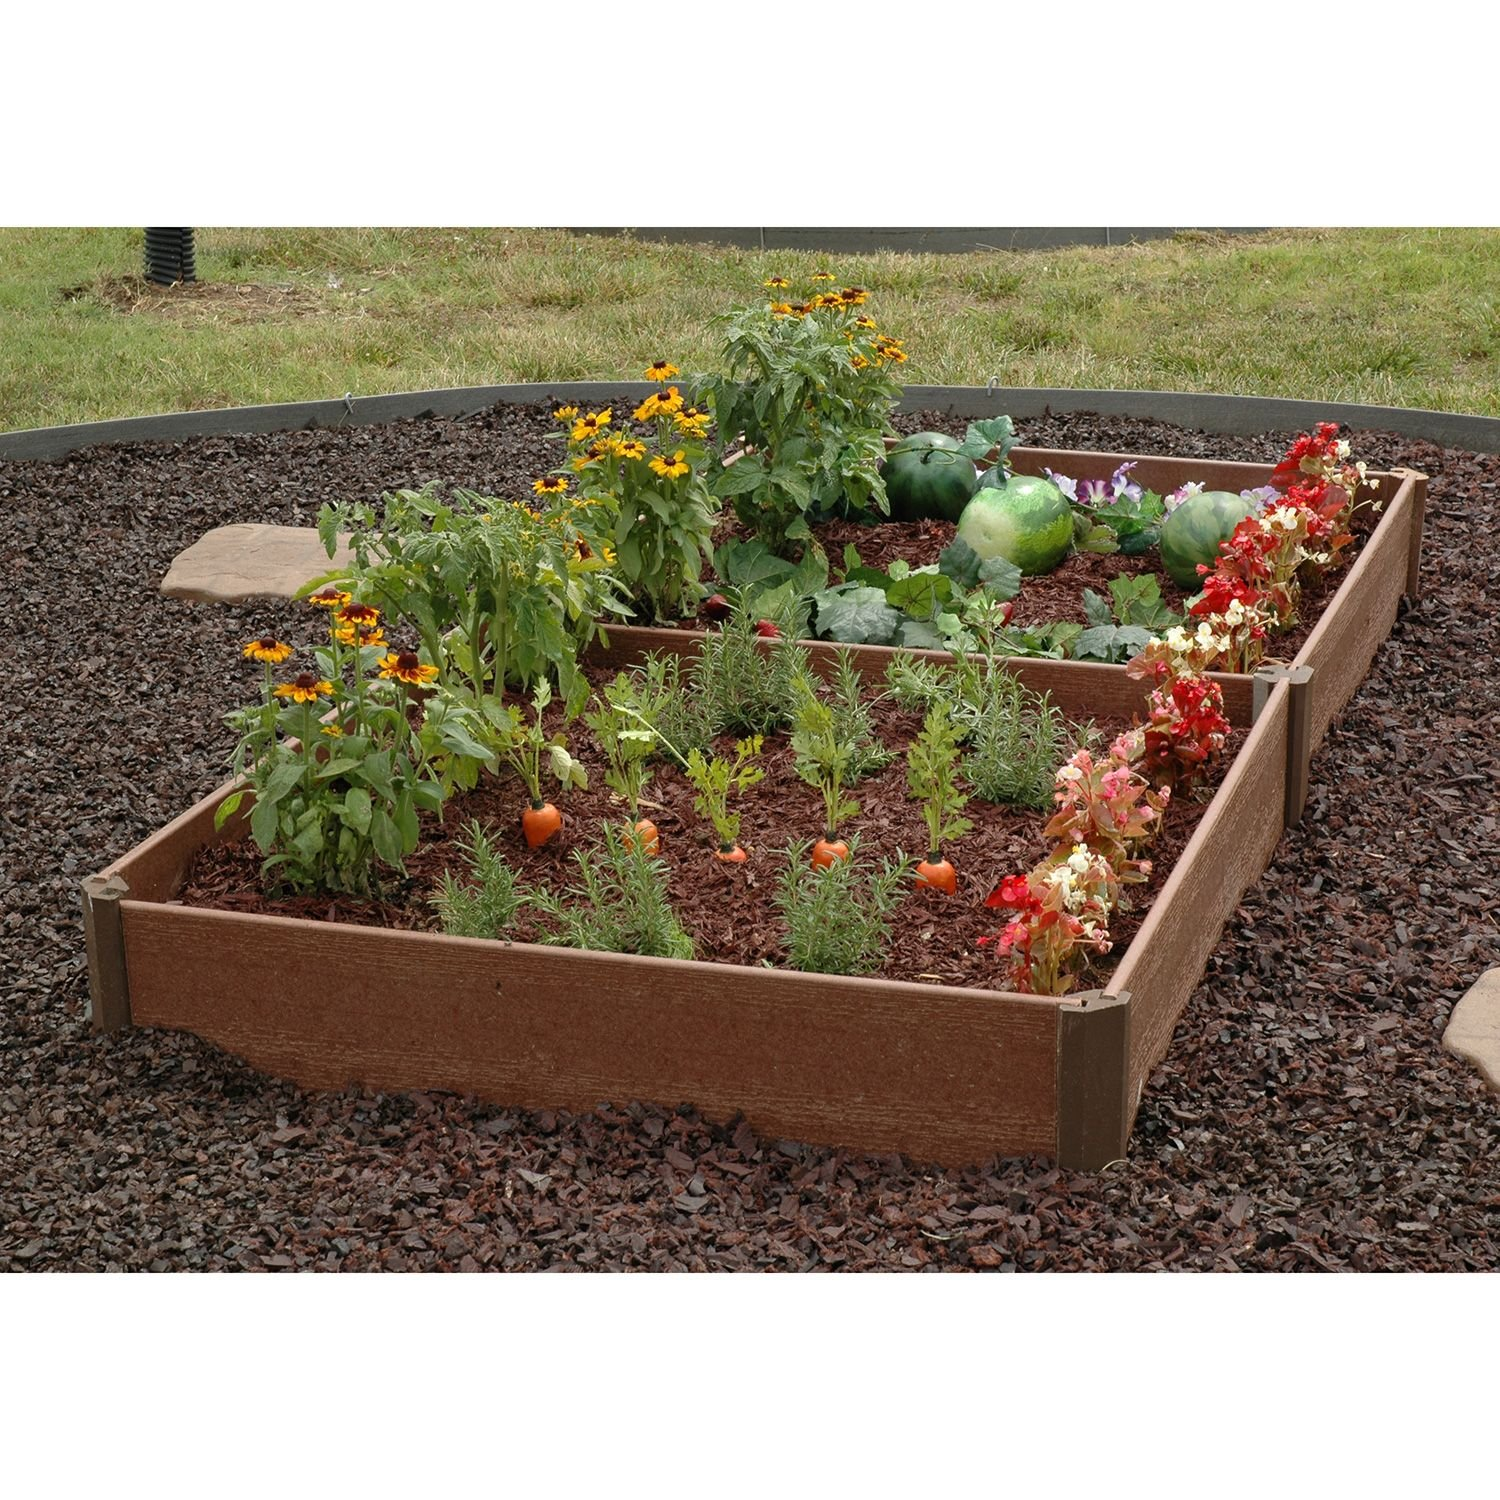 Questions about the recycled plastic raised garden bed 3 x 6 x 11 quot - Amazon Com Greenland Gardener Raised Bed Garden Kit 42 X 84 X 8 Patio Lawn Garden